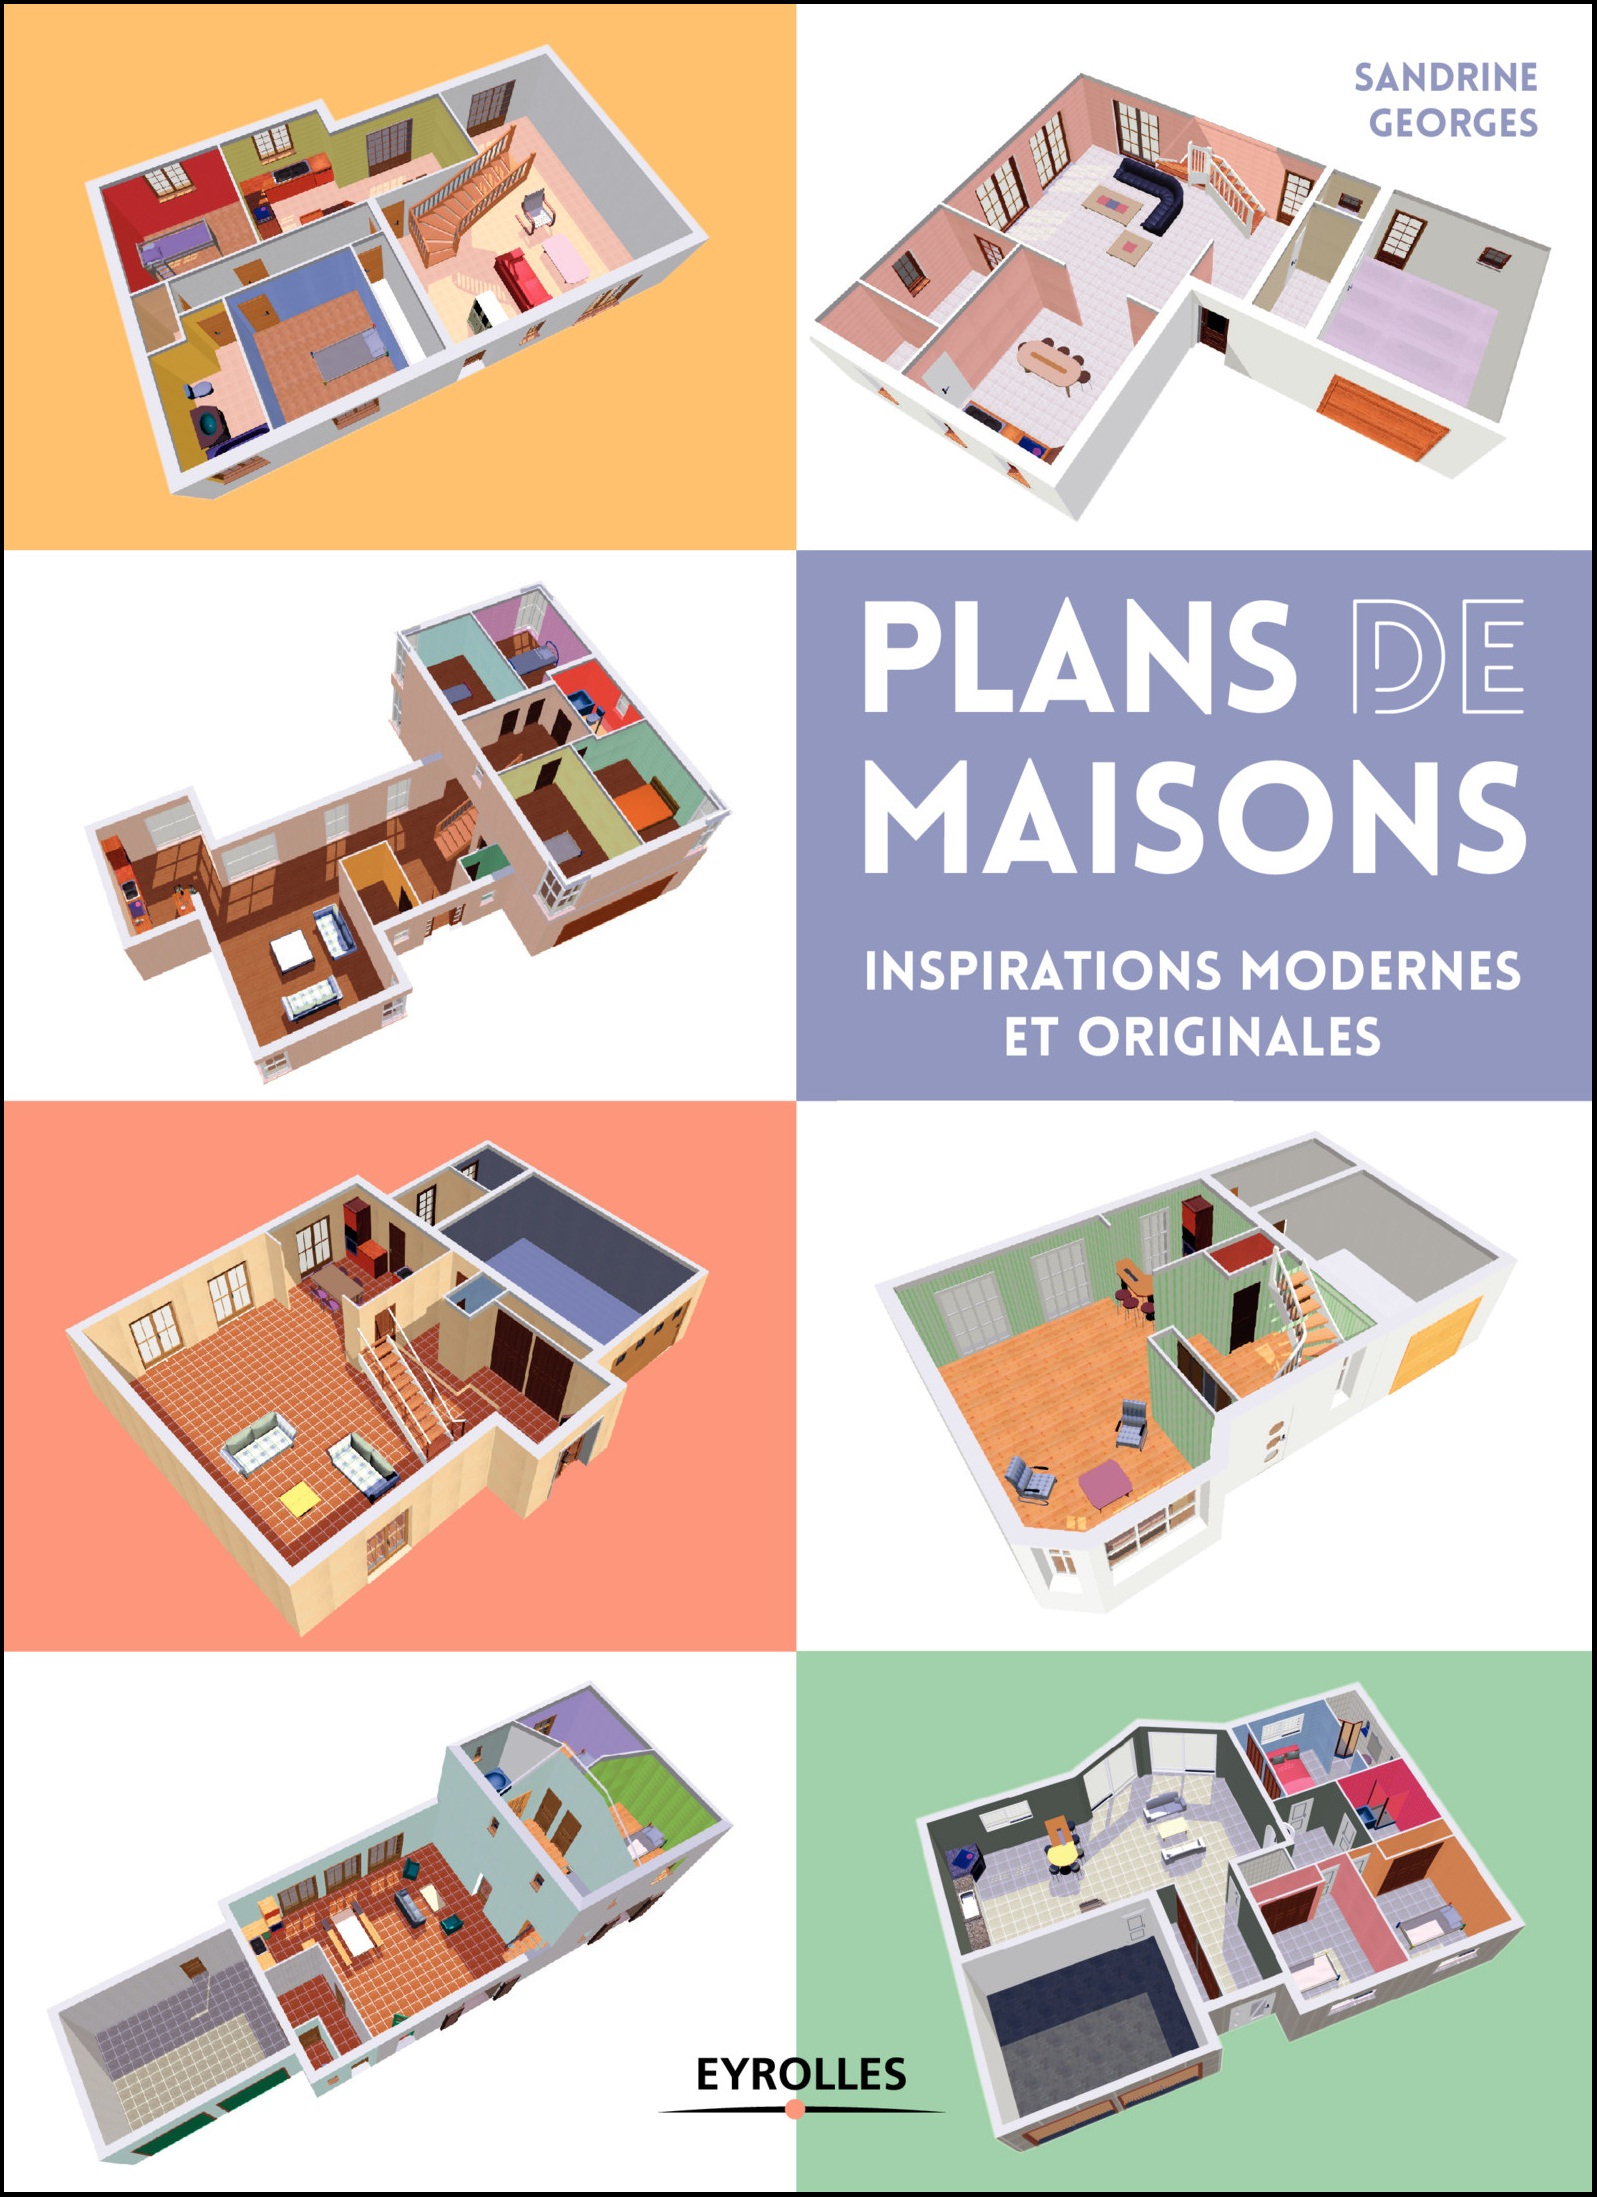 Plans de maisons inspirations modernes et originales telecharger magazine - Magazine plan de maison ...